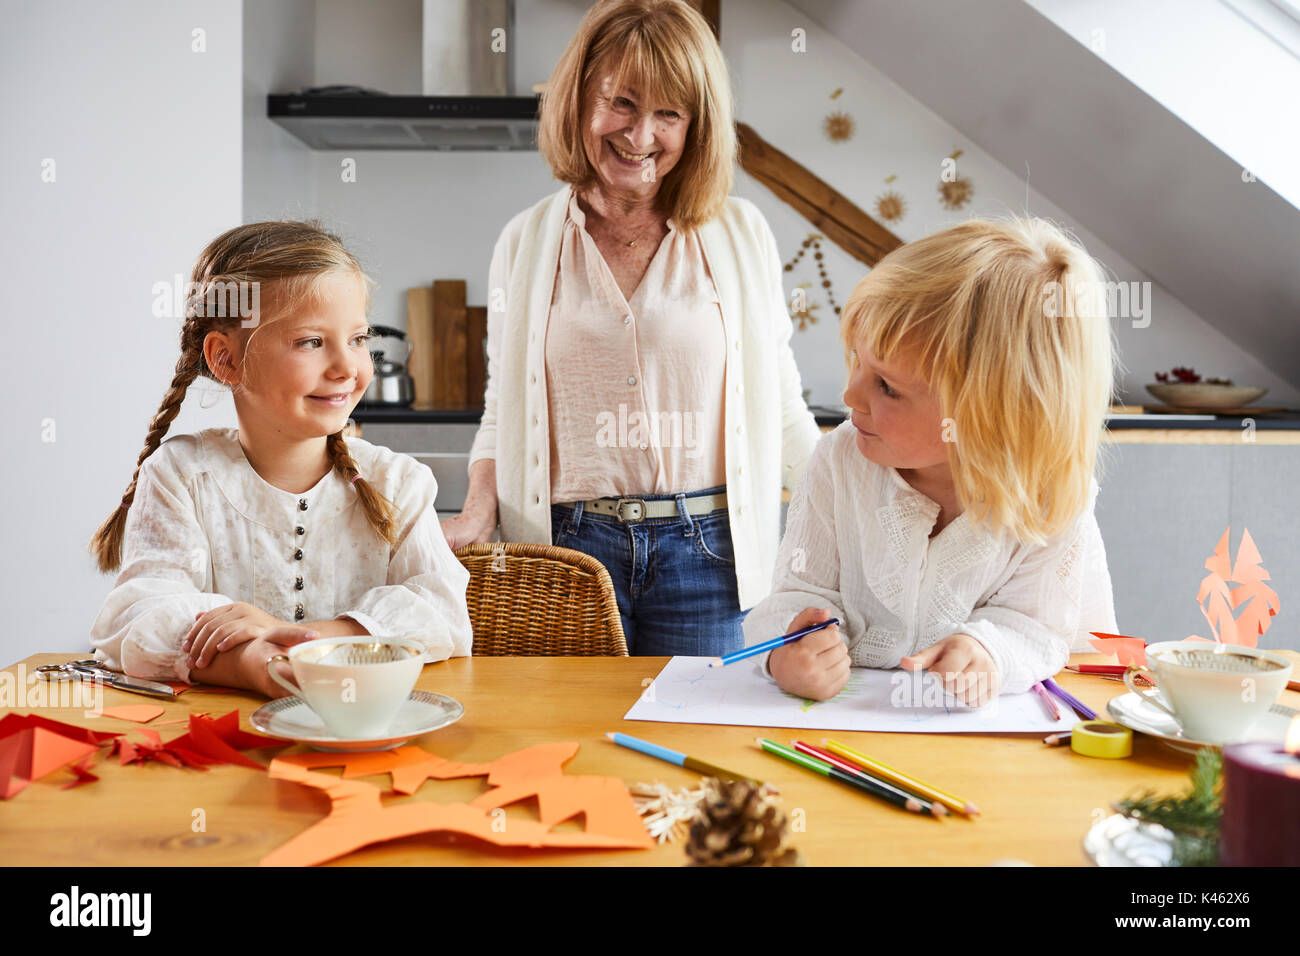 Grandmother and granddaughters while crafting at home in Christmas time - Stock Image